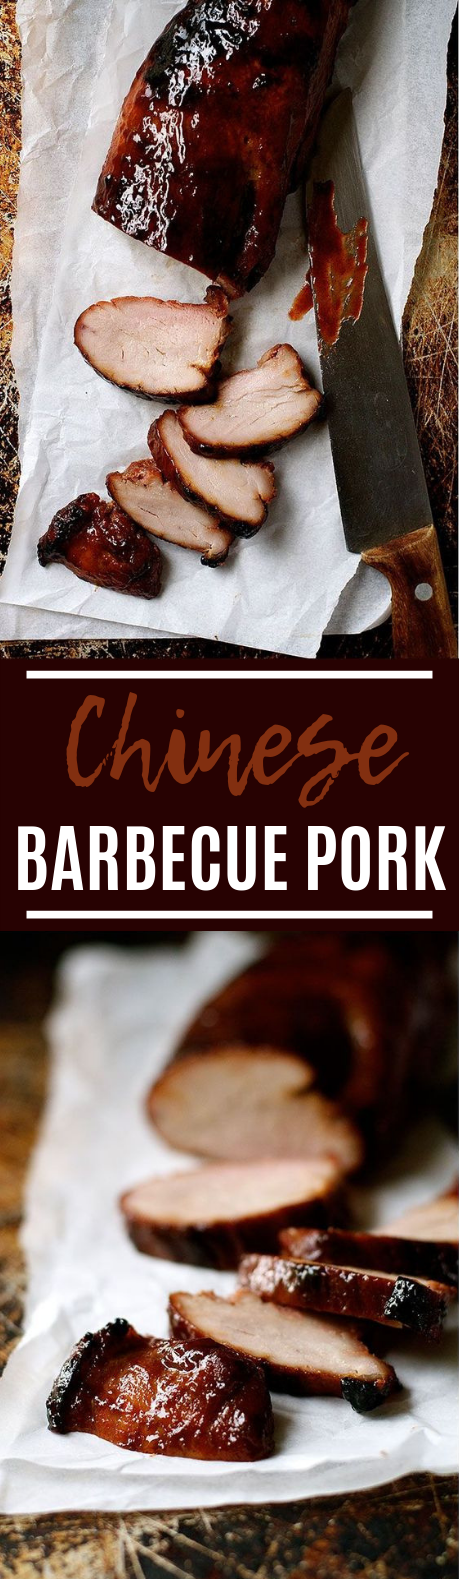 Char Siu (Chinese Barbecue Pork) #pork #dinner